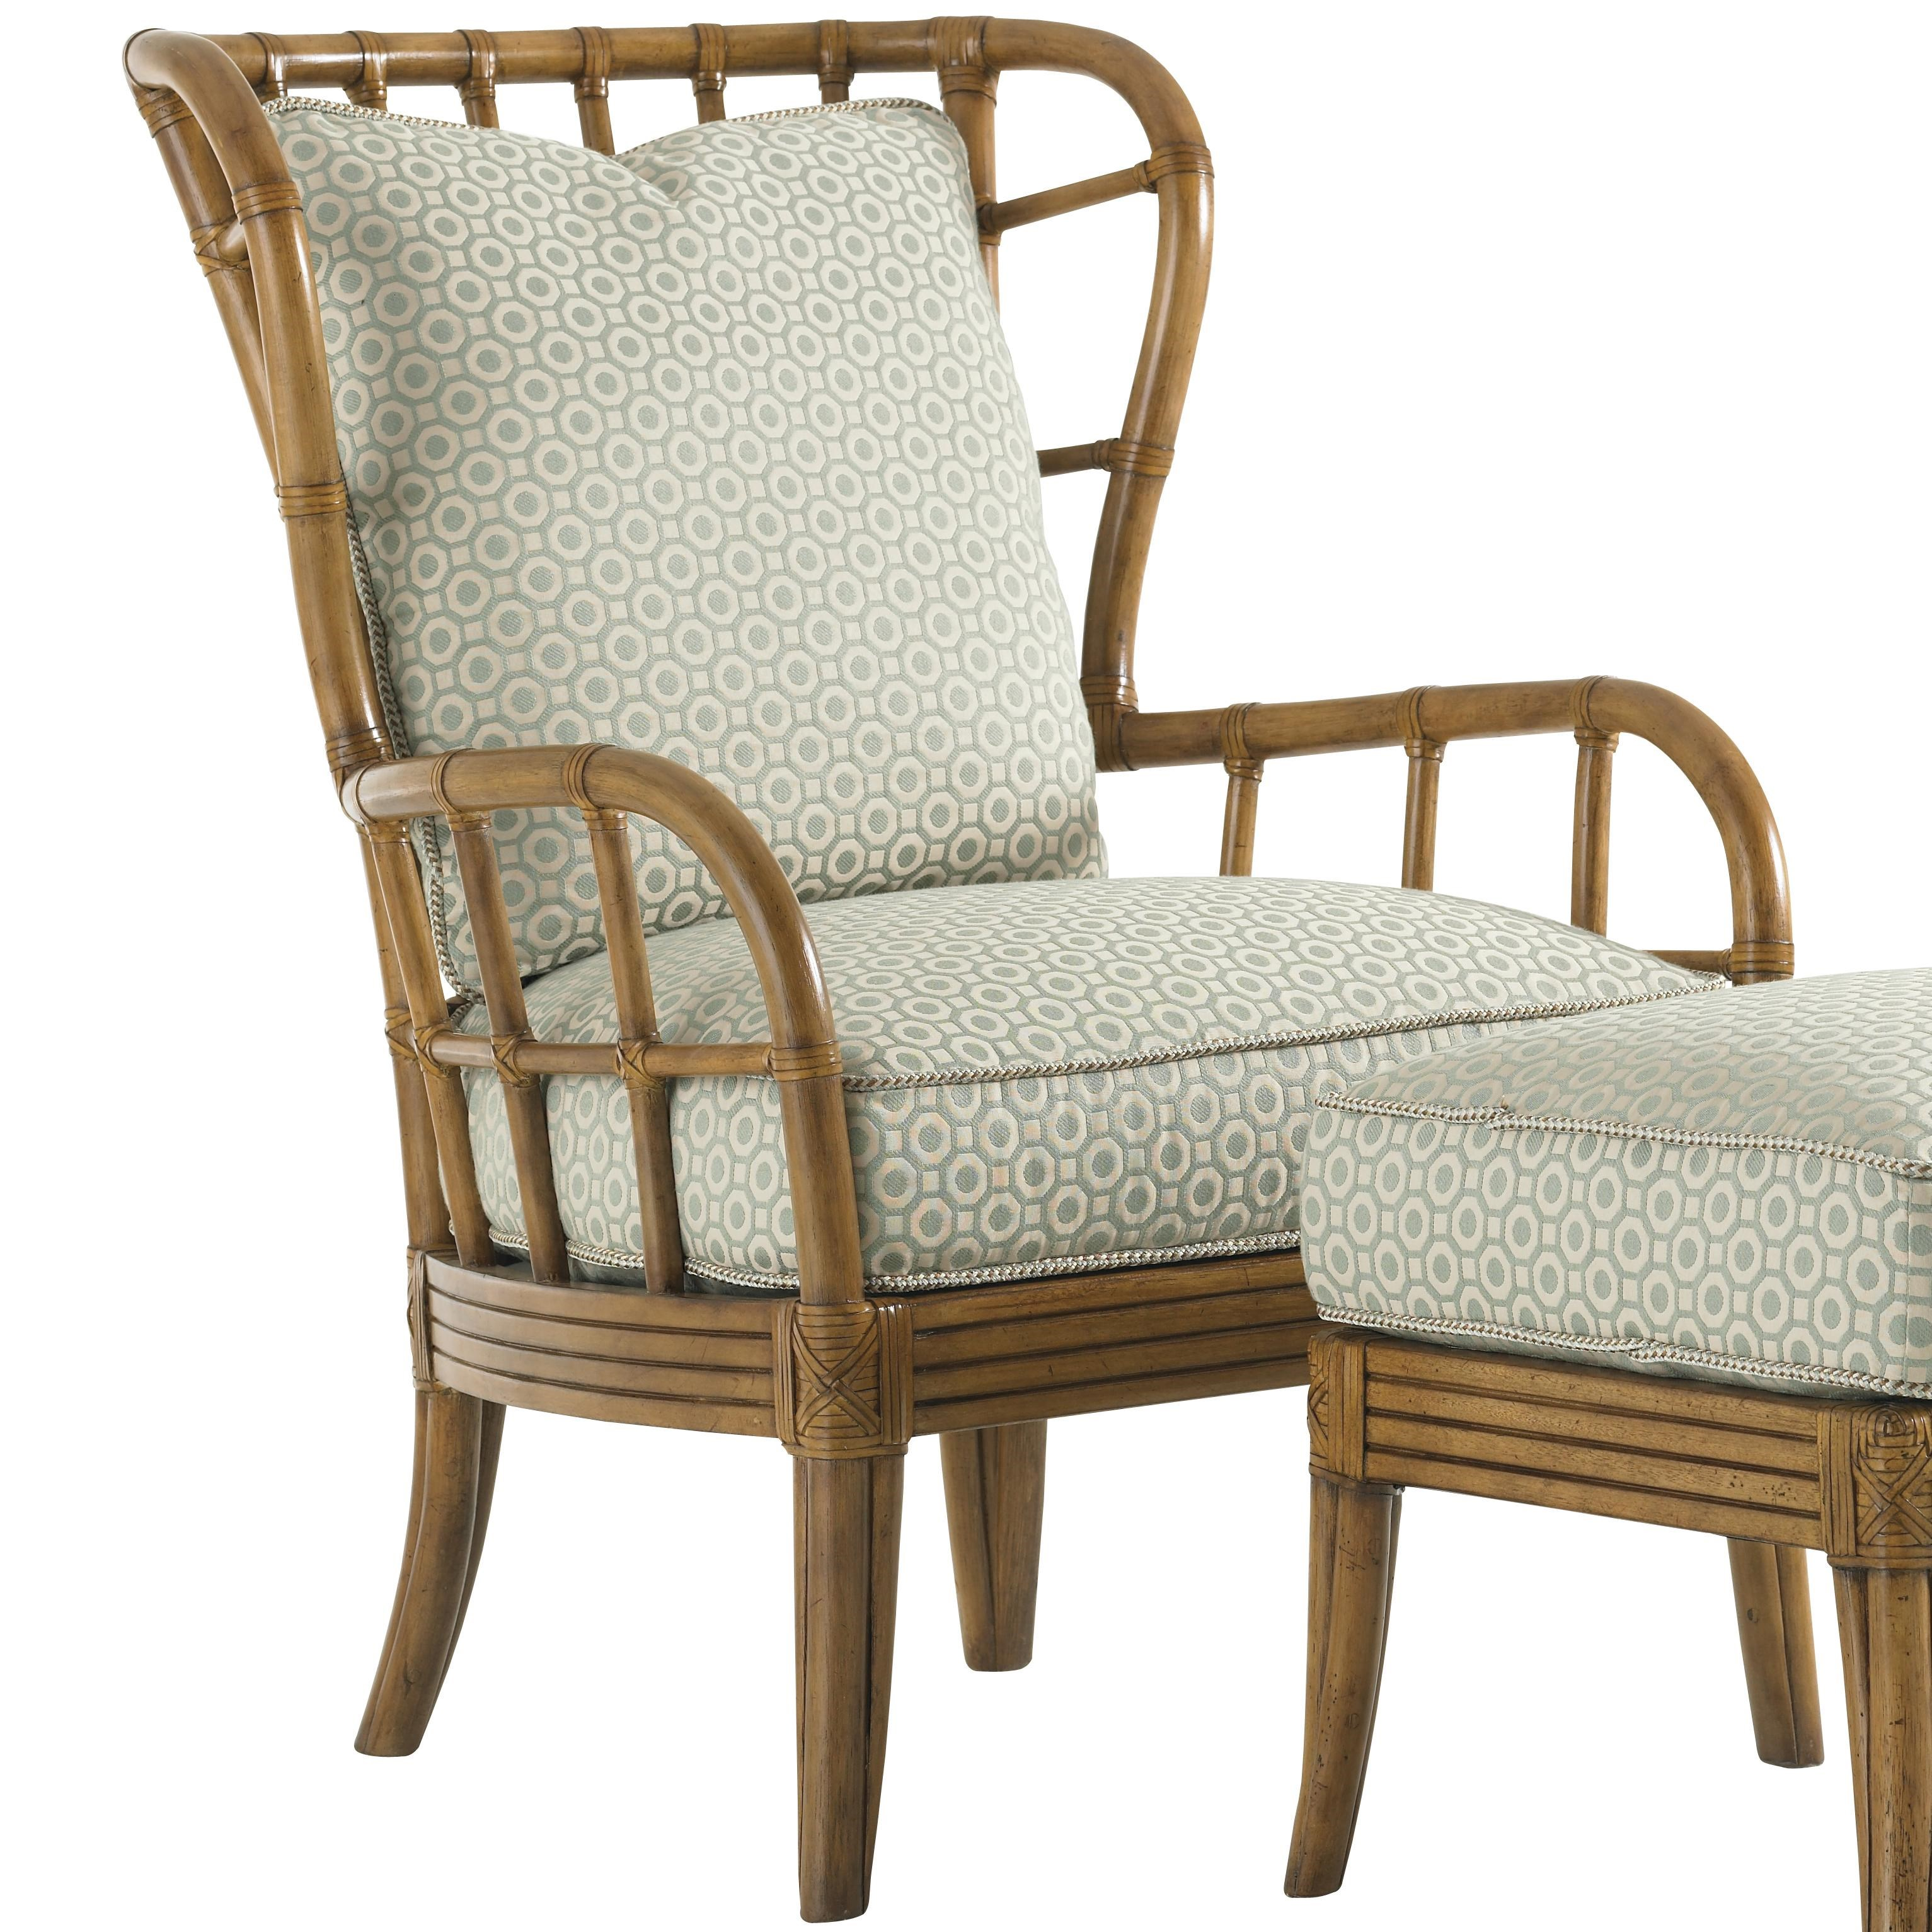 Delicieux Tommy Bahama Home Beach House Island Inspired Exposed Rattan Winged Sunset  Cove Chair